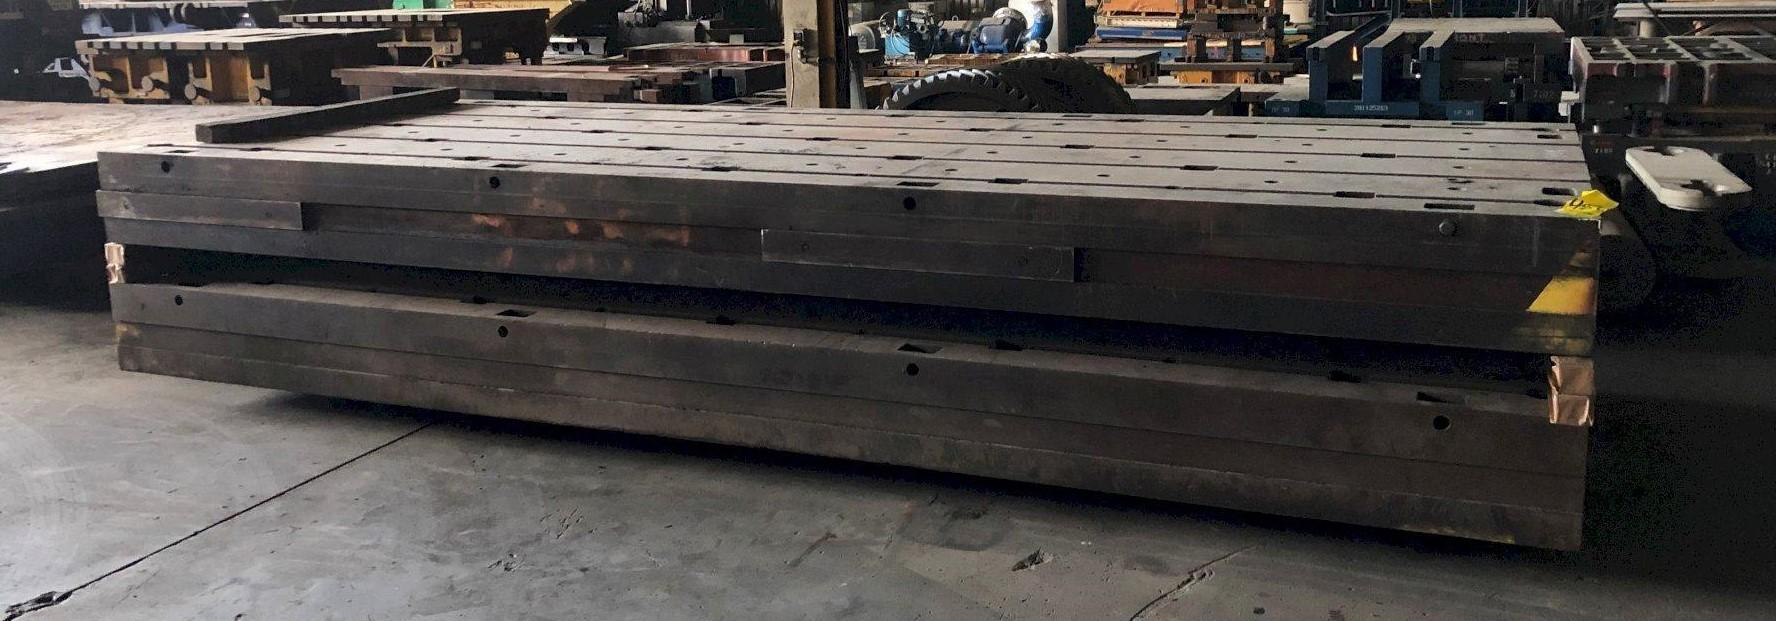 """77"""" x 203"""" x 13-3/4"""" T-SLOTTED FLOOR PLATE: STOCK #11490"""